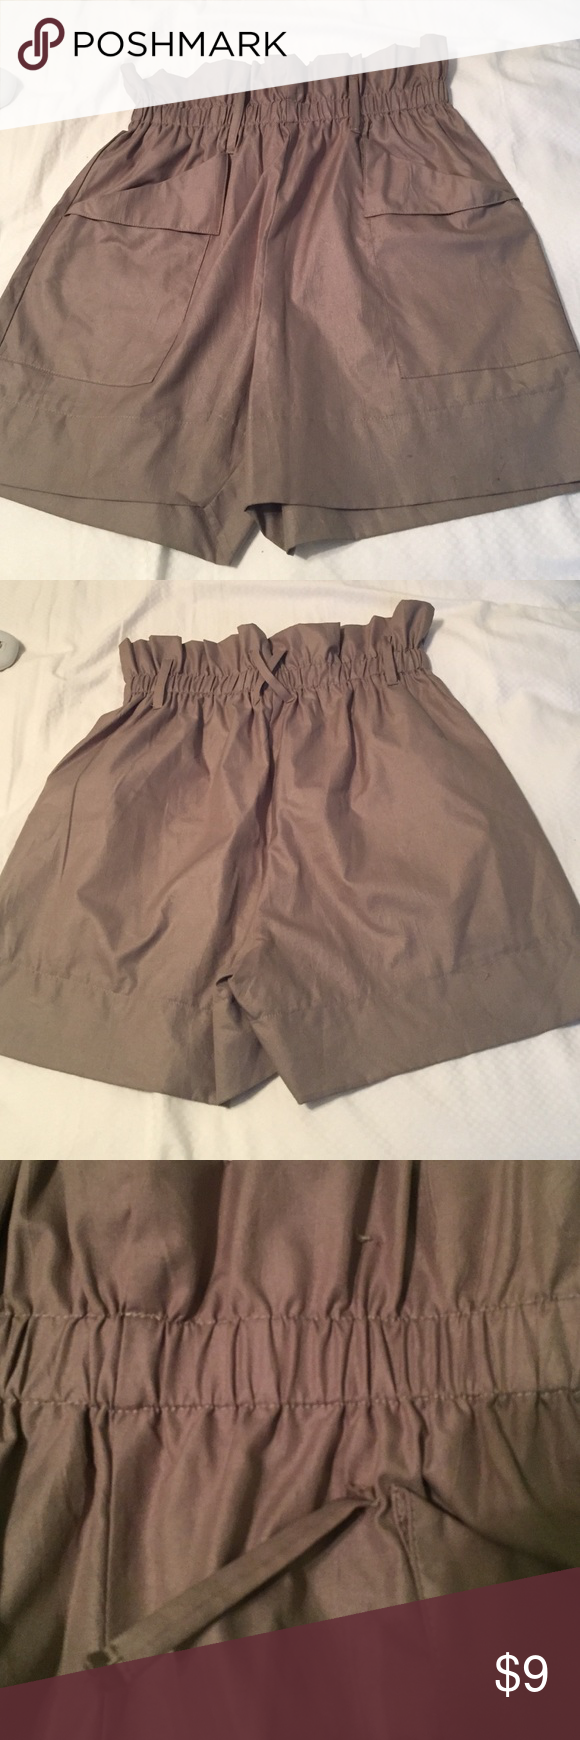 Olive high waisted dress shorts Beautiful shorts for fall with stockings and booties! More of a pale olive green than shown in pictures! One of the bucket loops needs to be sewn as shown in pictures! Priced to sell!! Shorts